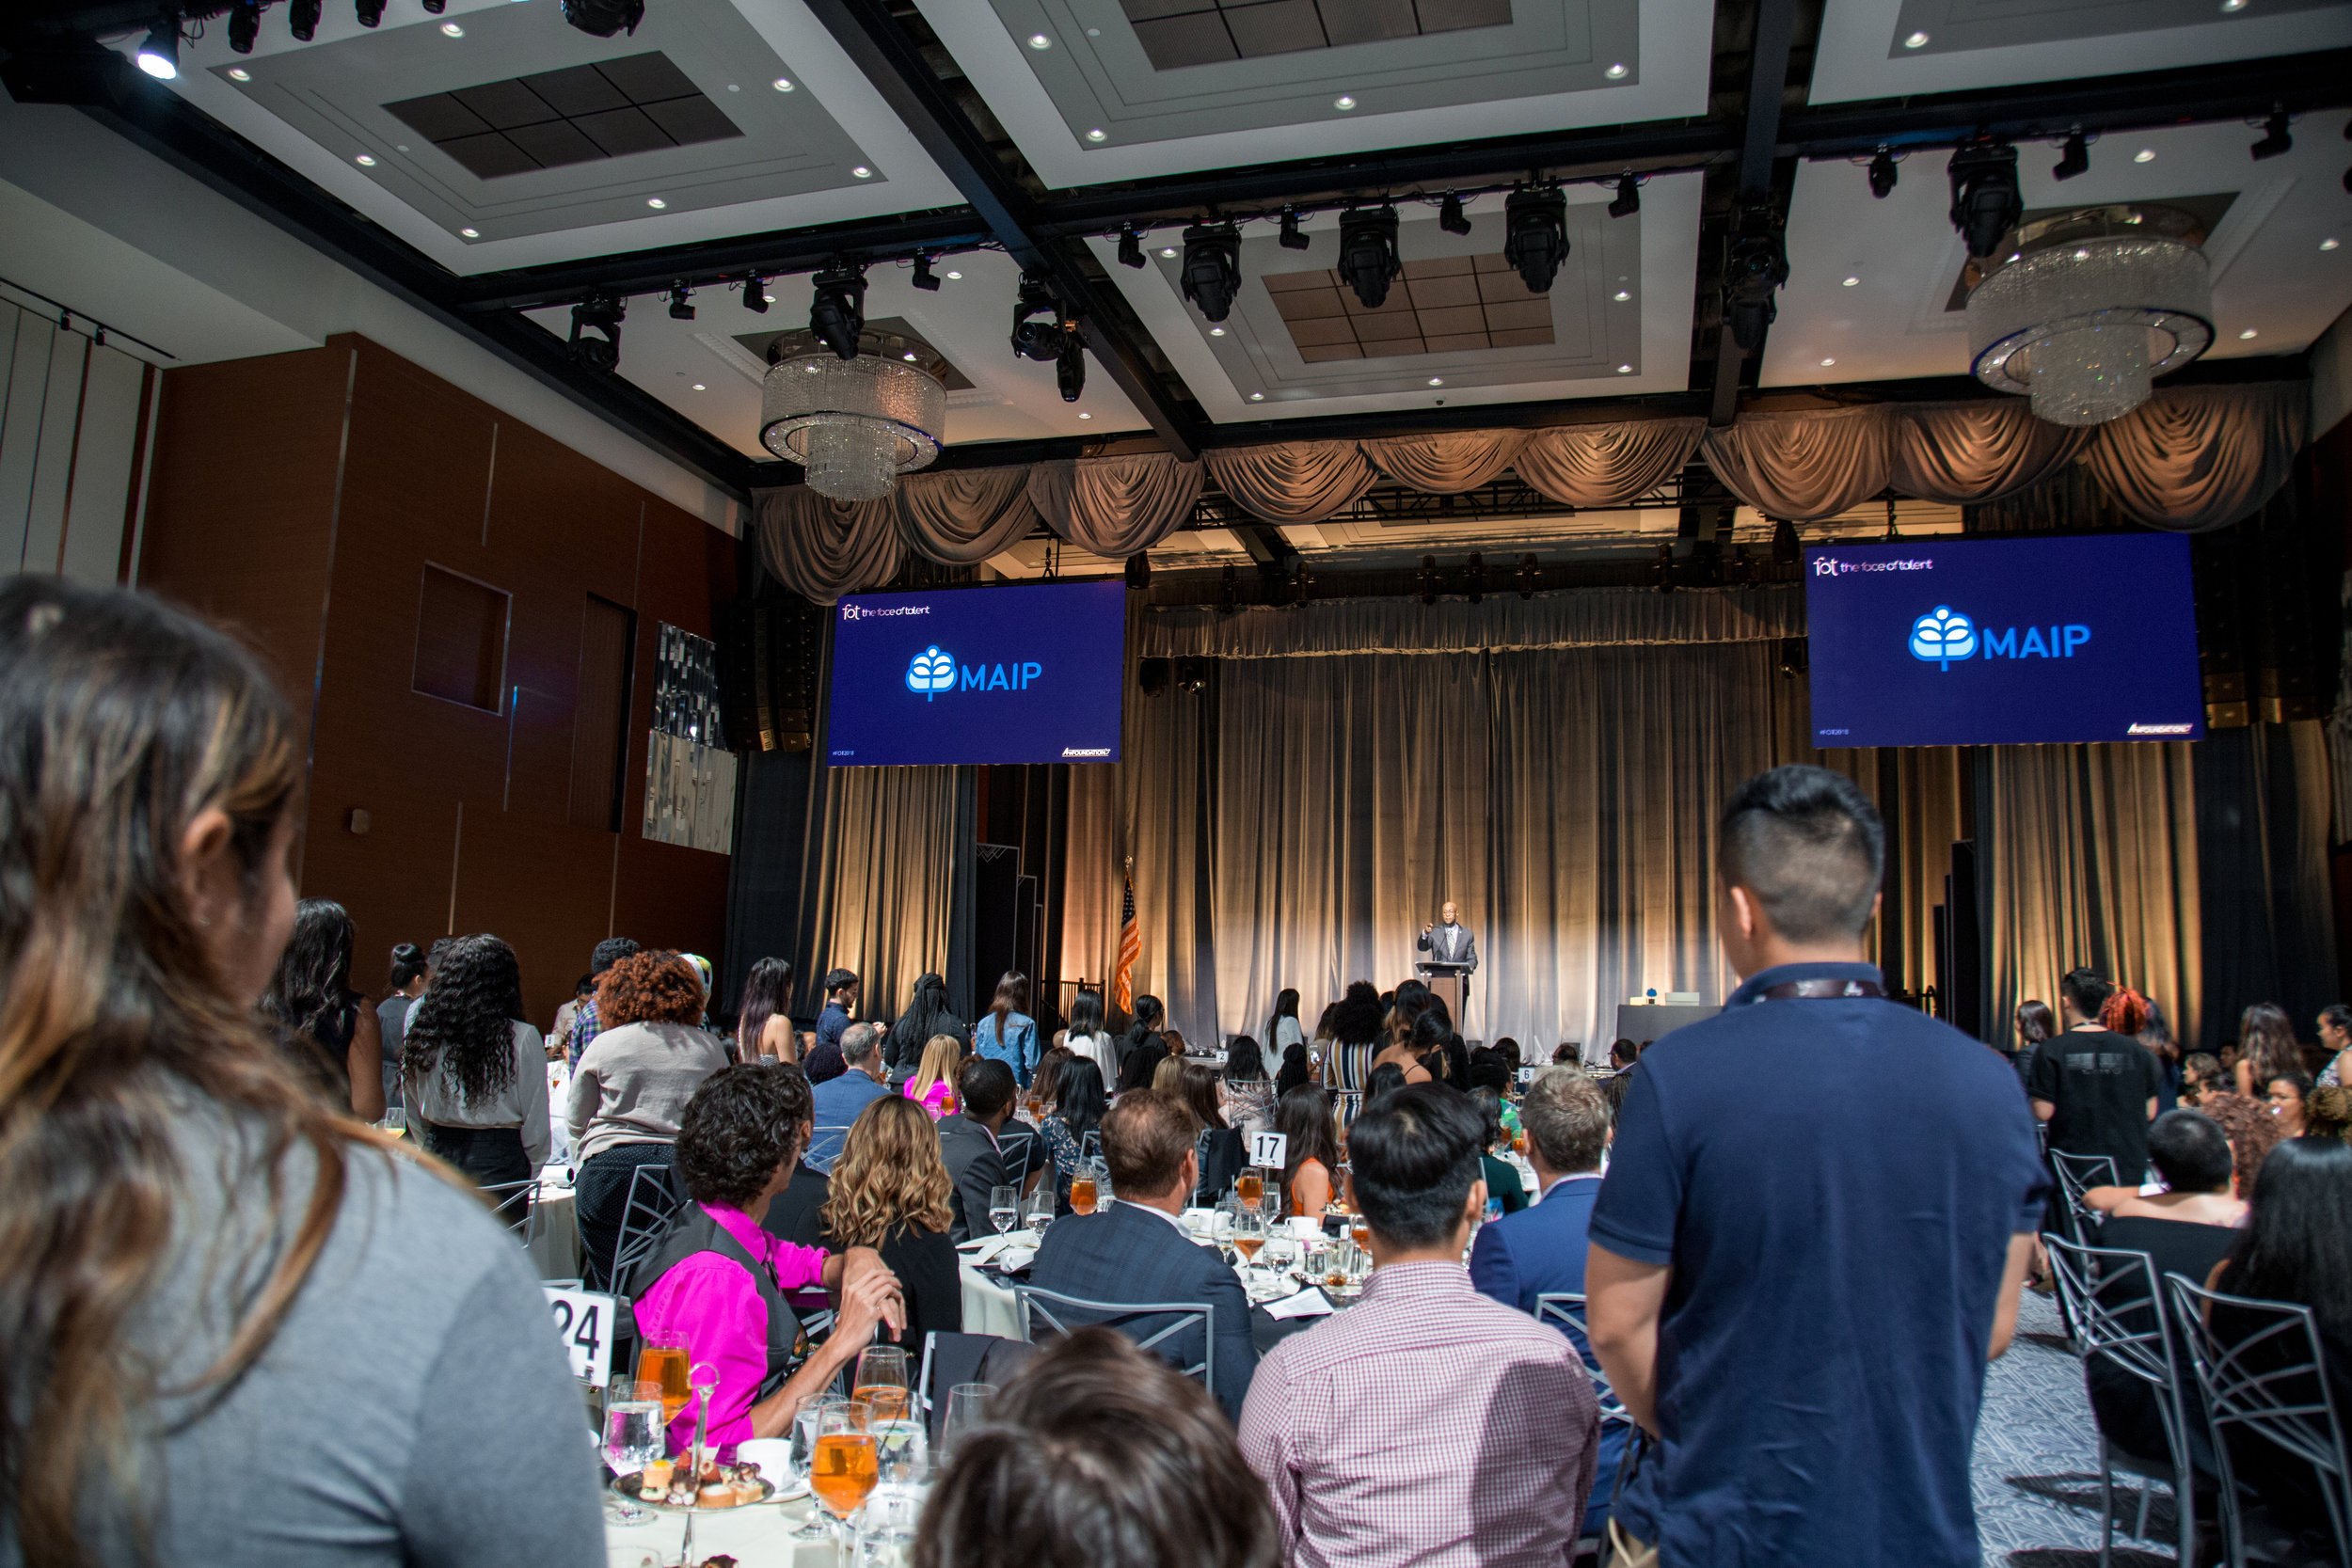 4As_MAIP_FOT_Luncheon_2018_Margarita_Corporan-181.jpg